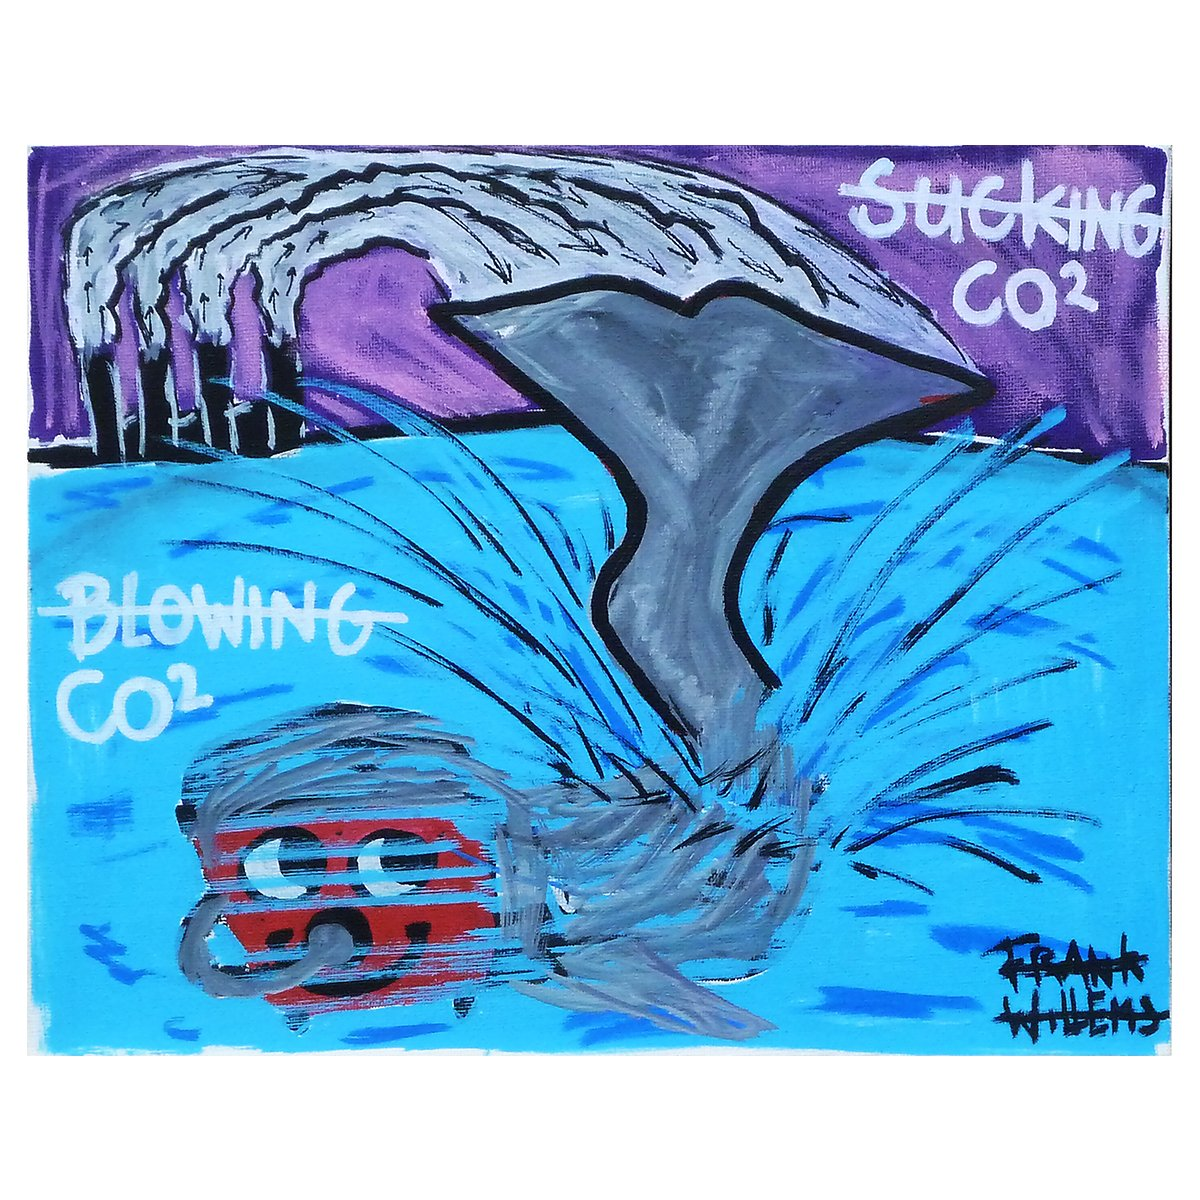 BLOWING - SUCKING CO2 - Frank Willems